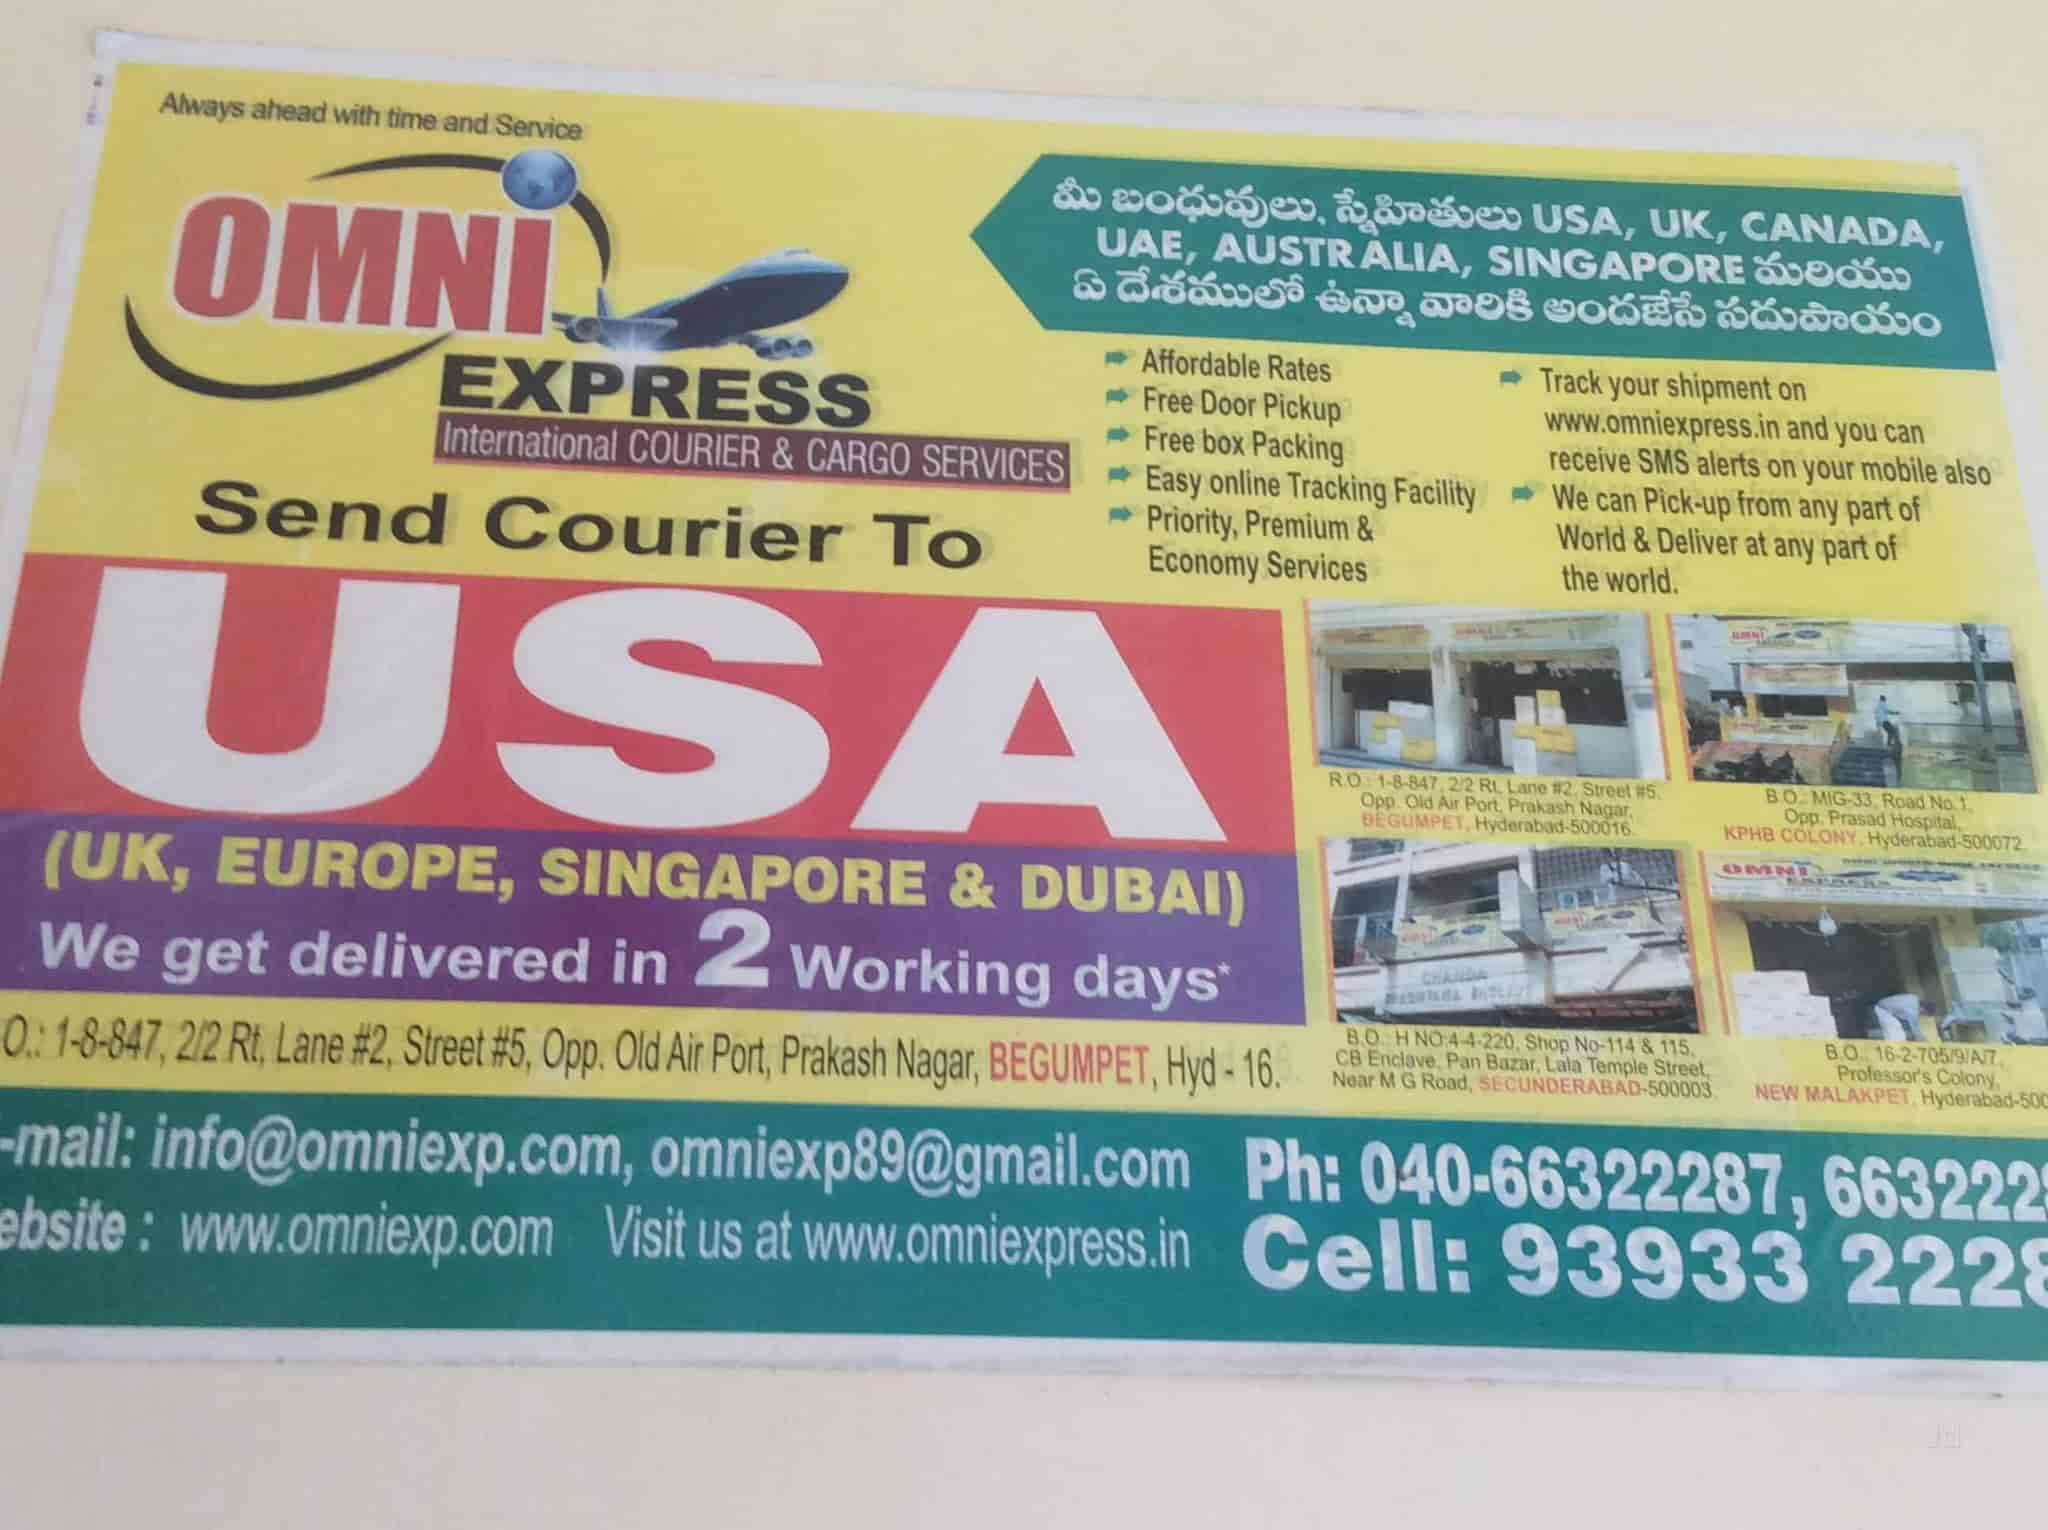 Omni World Wide Express Photos, Diamond Point Sikh Village